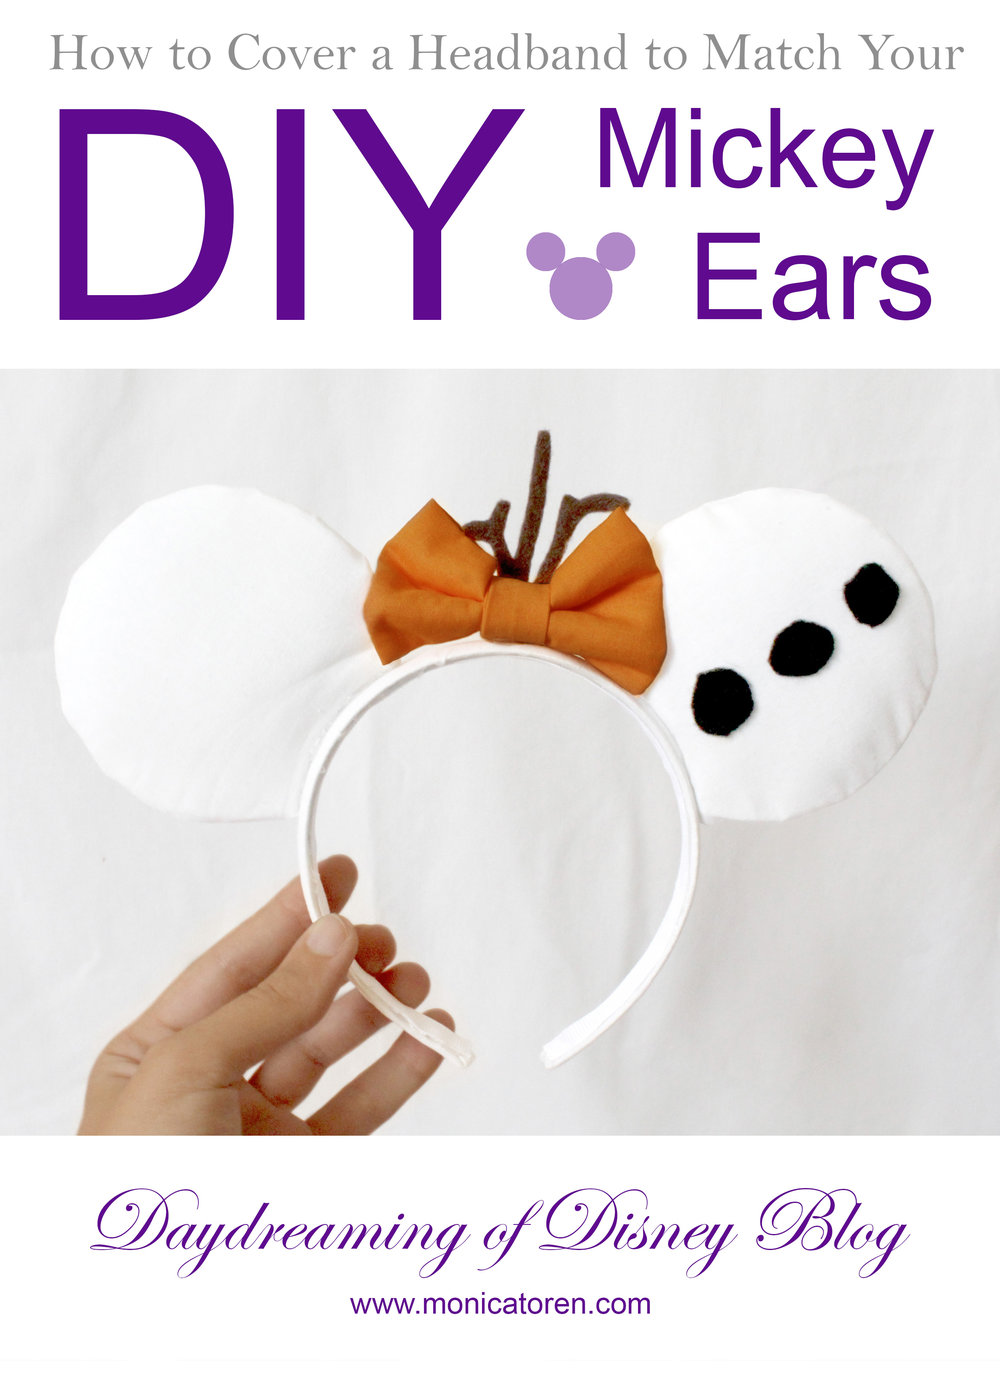 Daydreaming of Disney Blog - How to Cover a Headband to Match Your DIY Mickey Ears - http://www.monicatoren.com